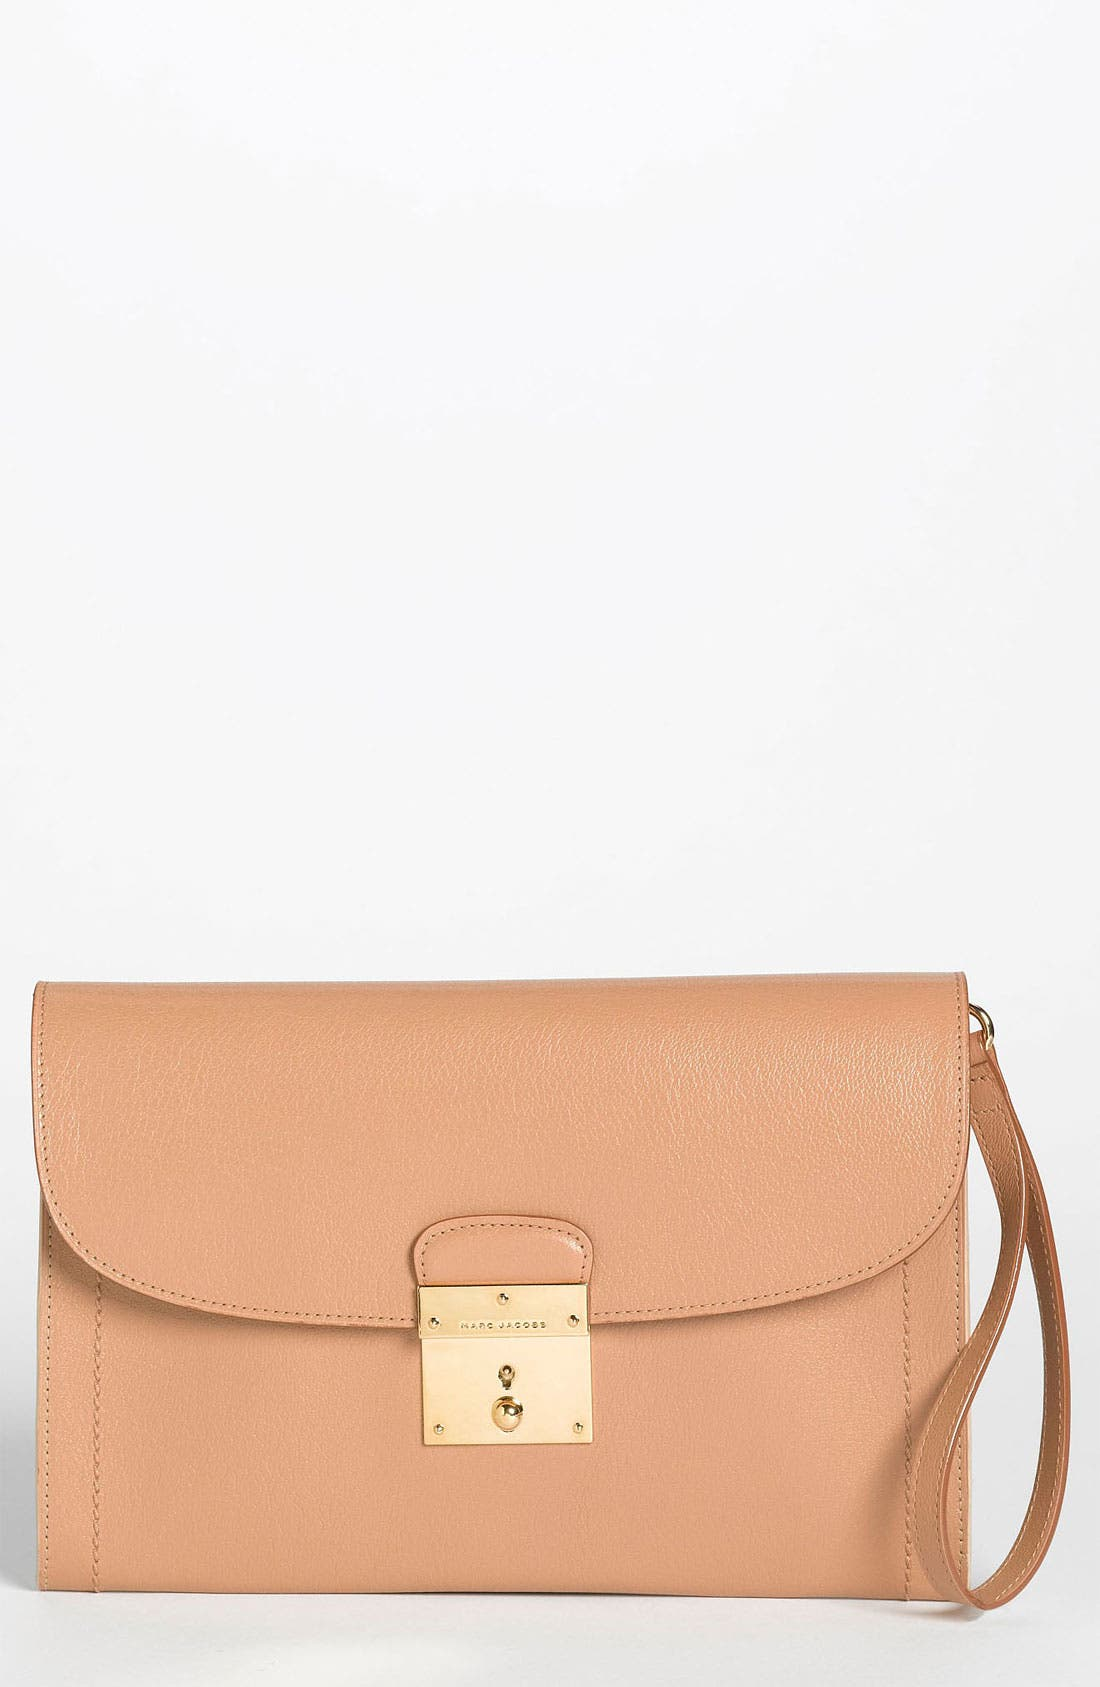 Main Image - MARC JACOBS '1984 Isobel' Leather Clutch